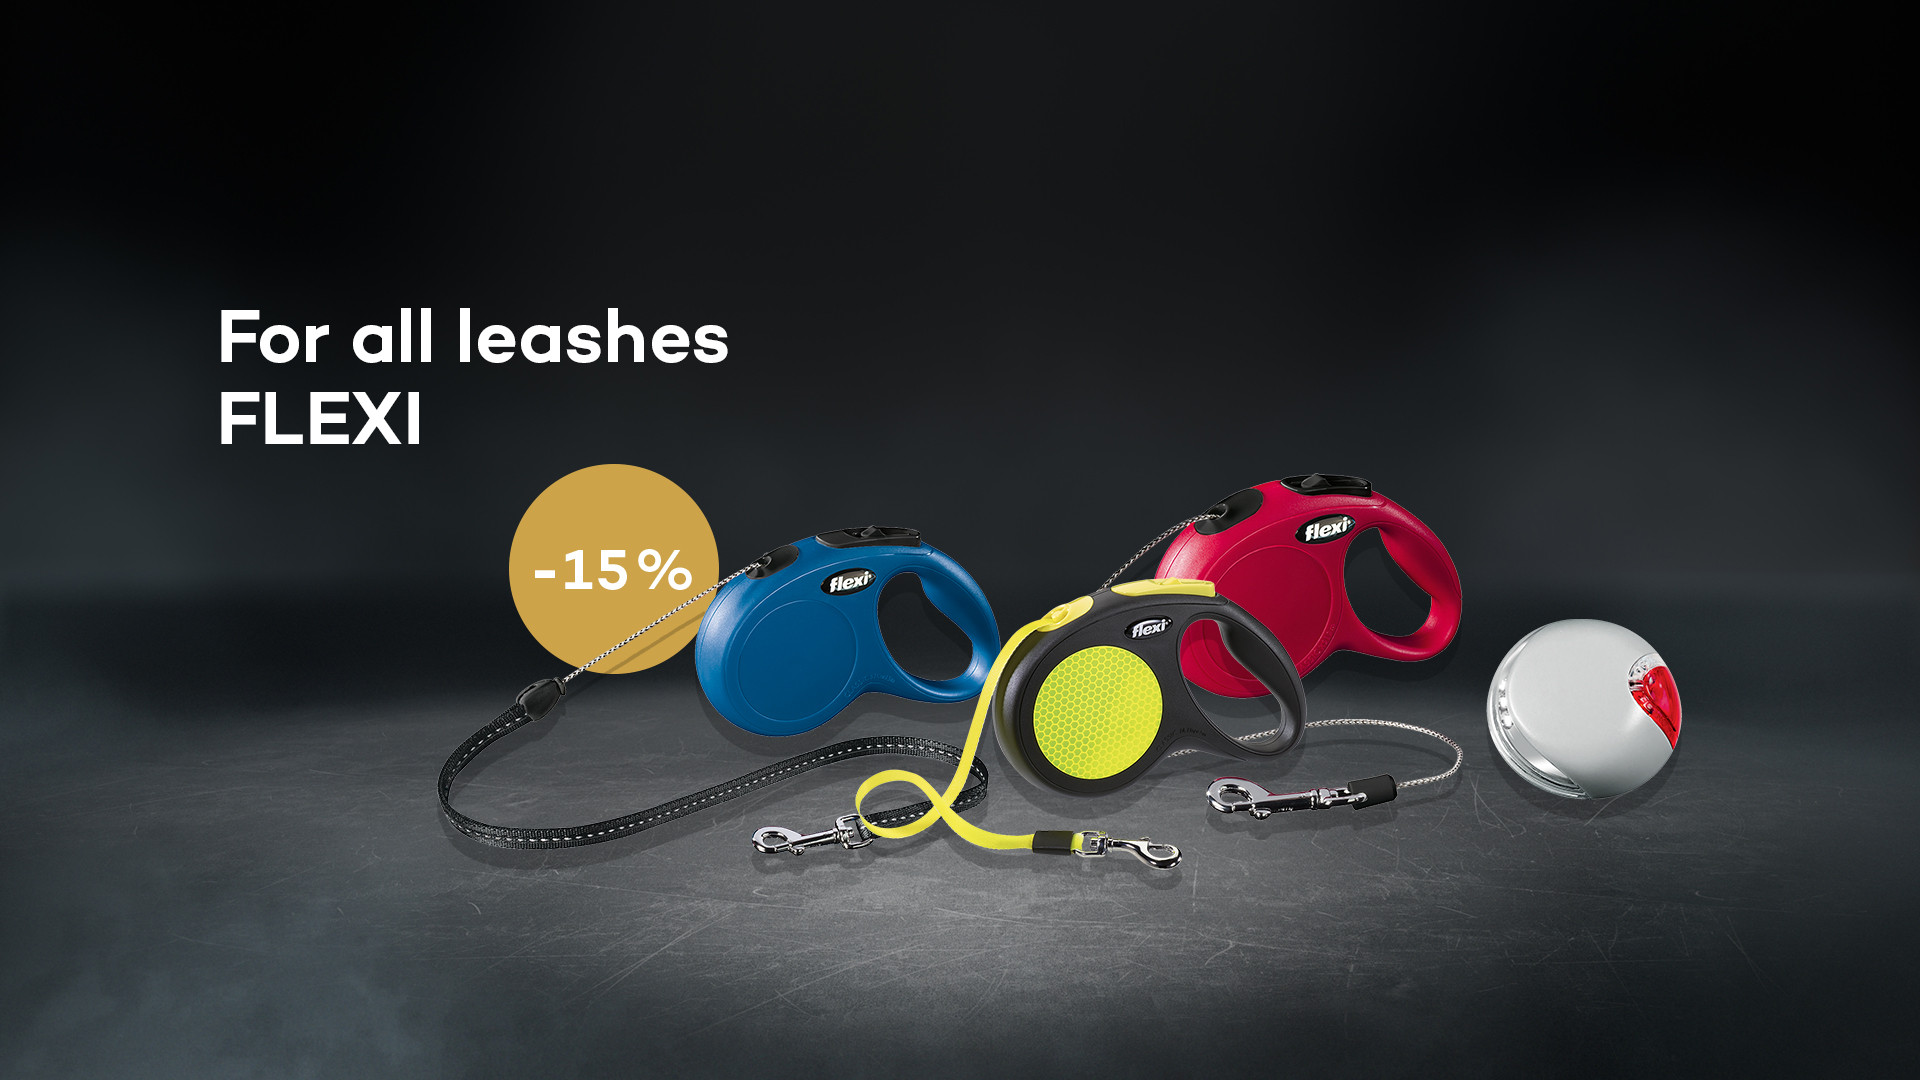 For all leashes FLEXI 15% discount